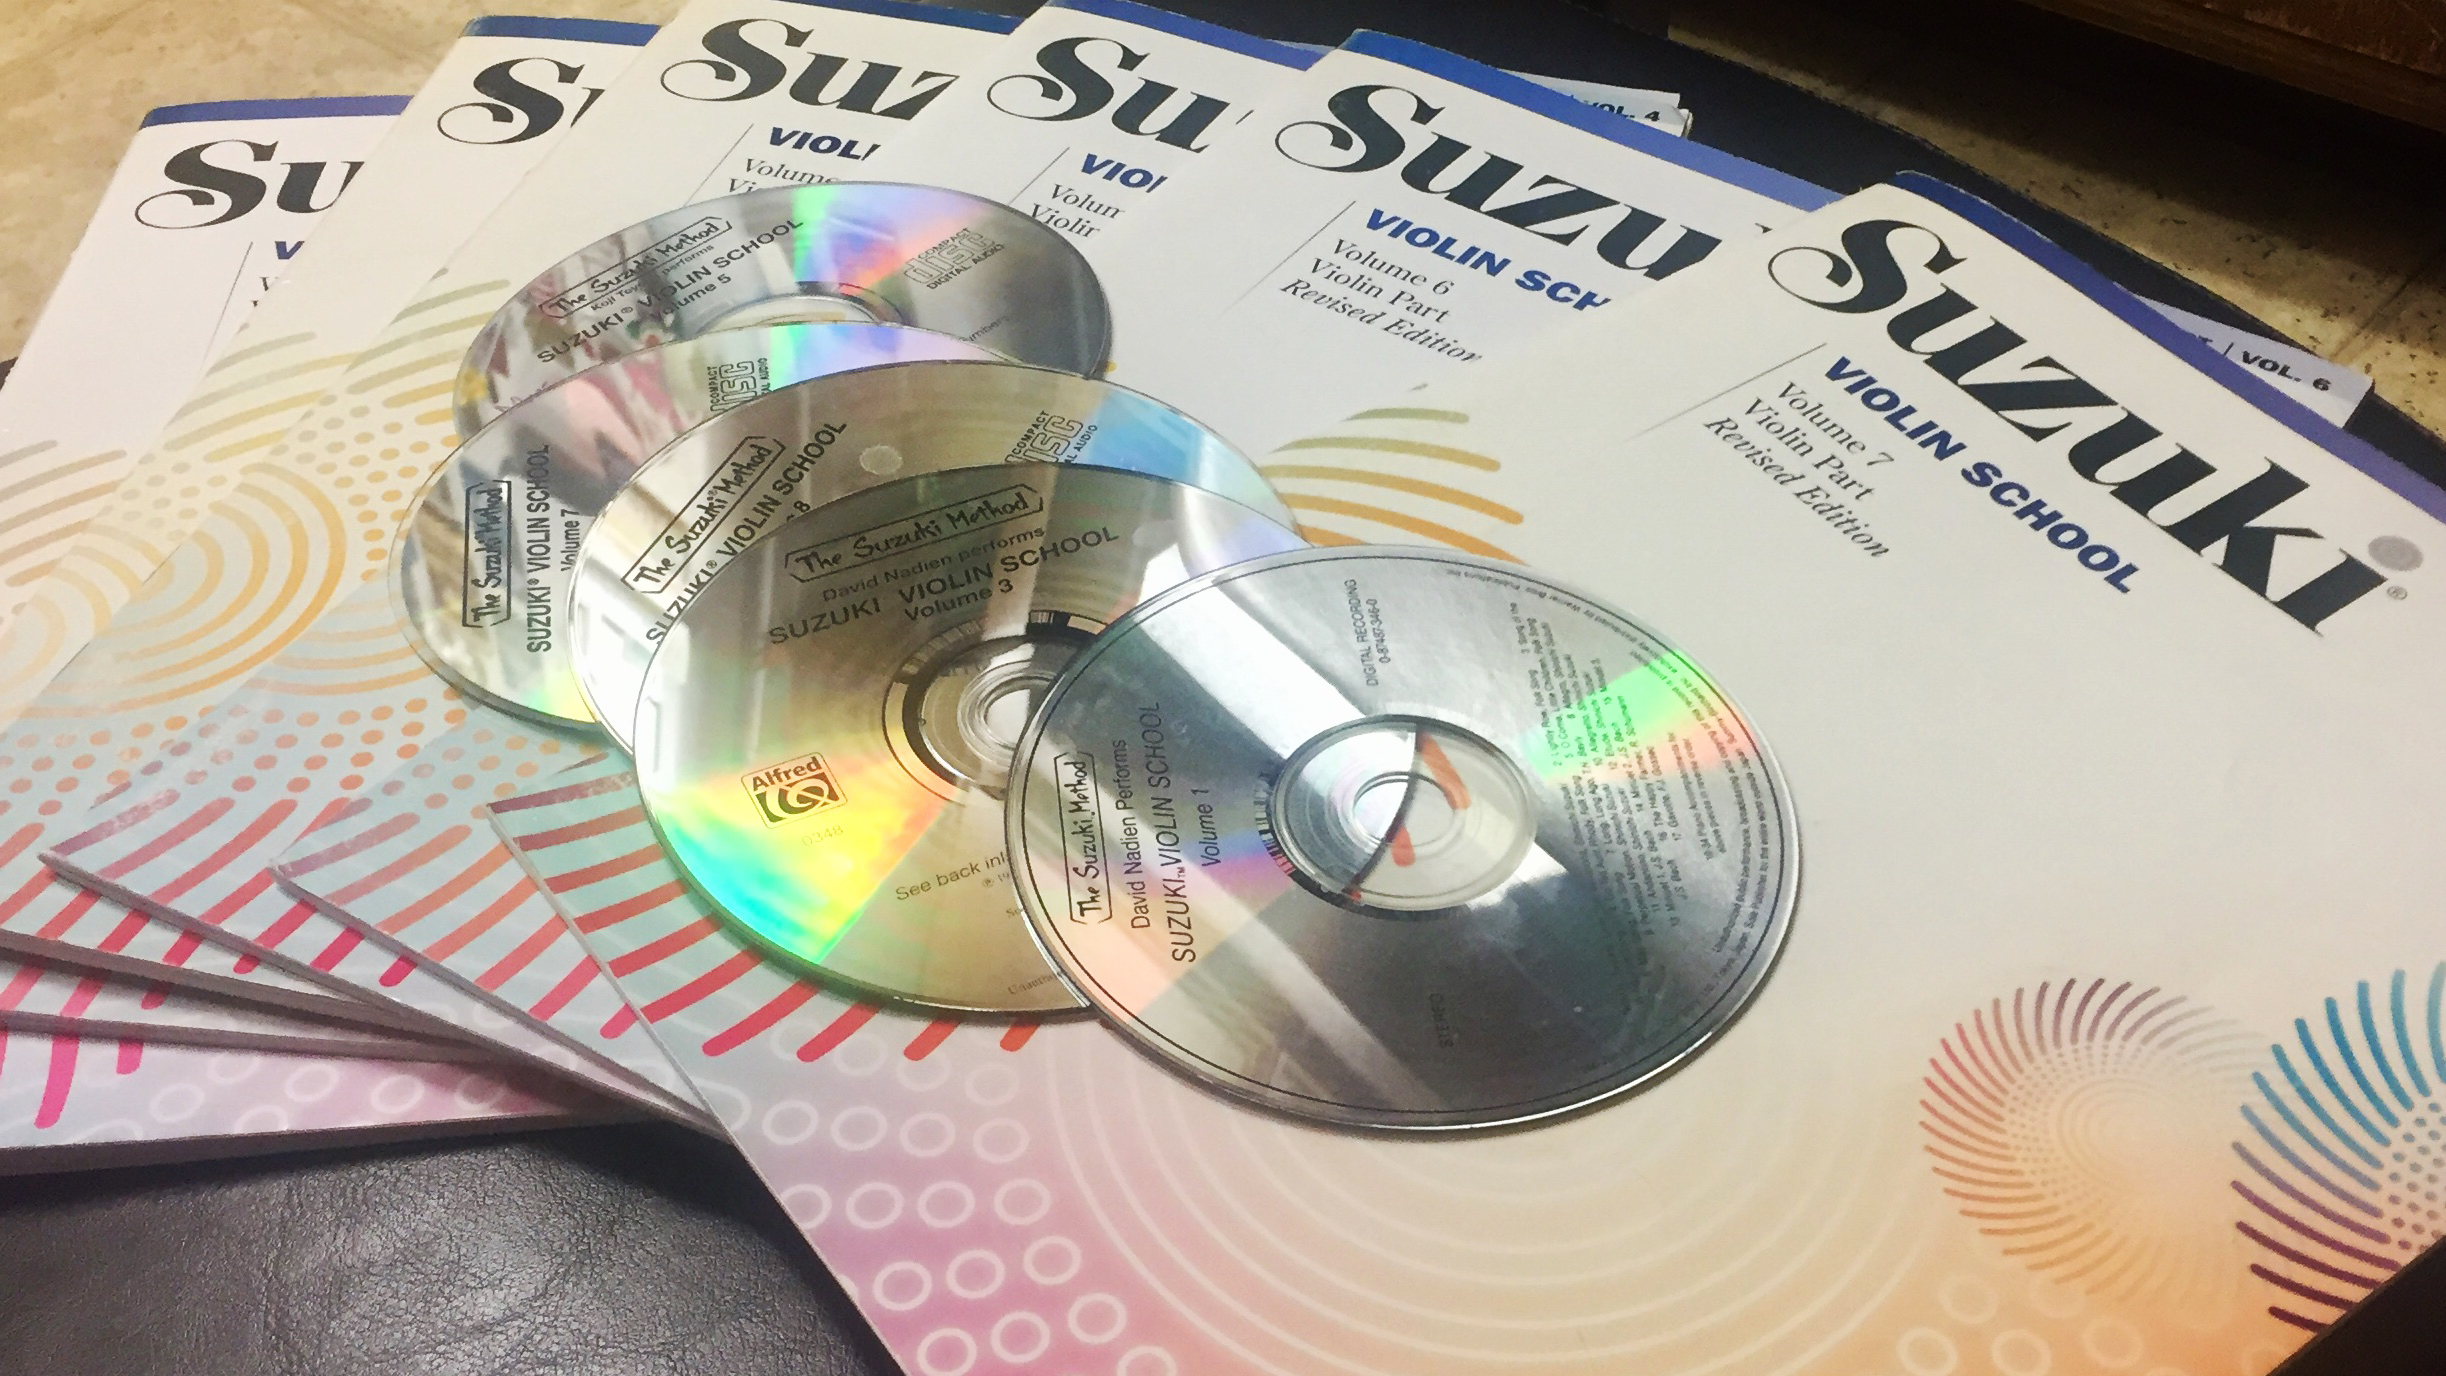 Alfred Music Announces New Suzuki Recordings to Replace Preucil Recordings